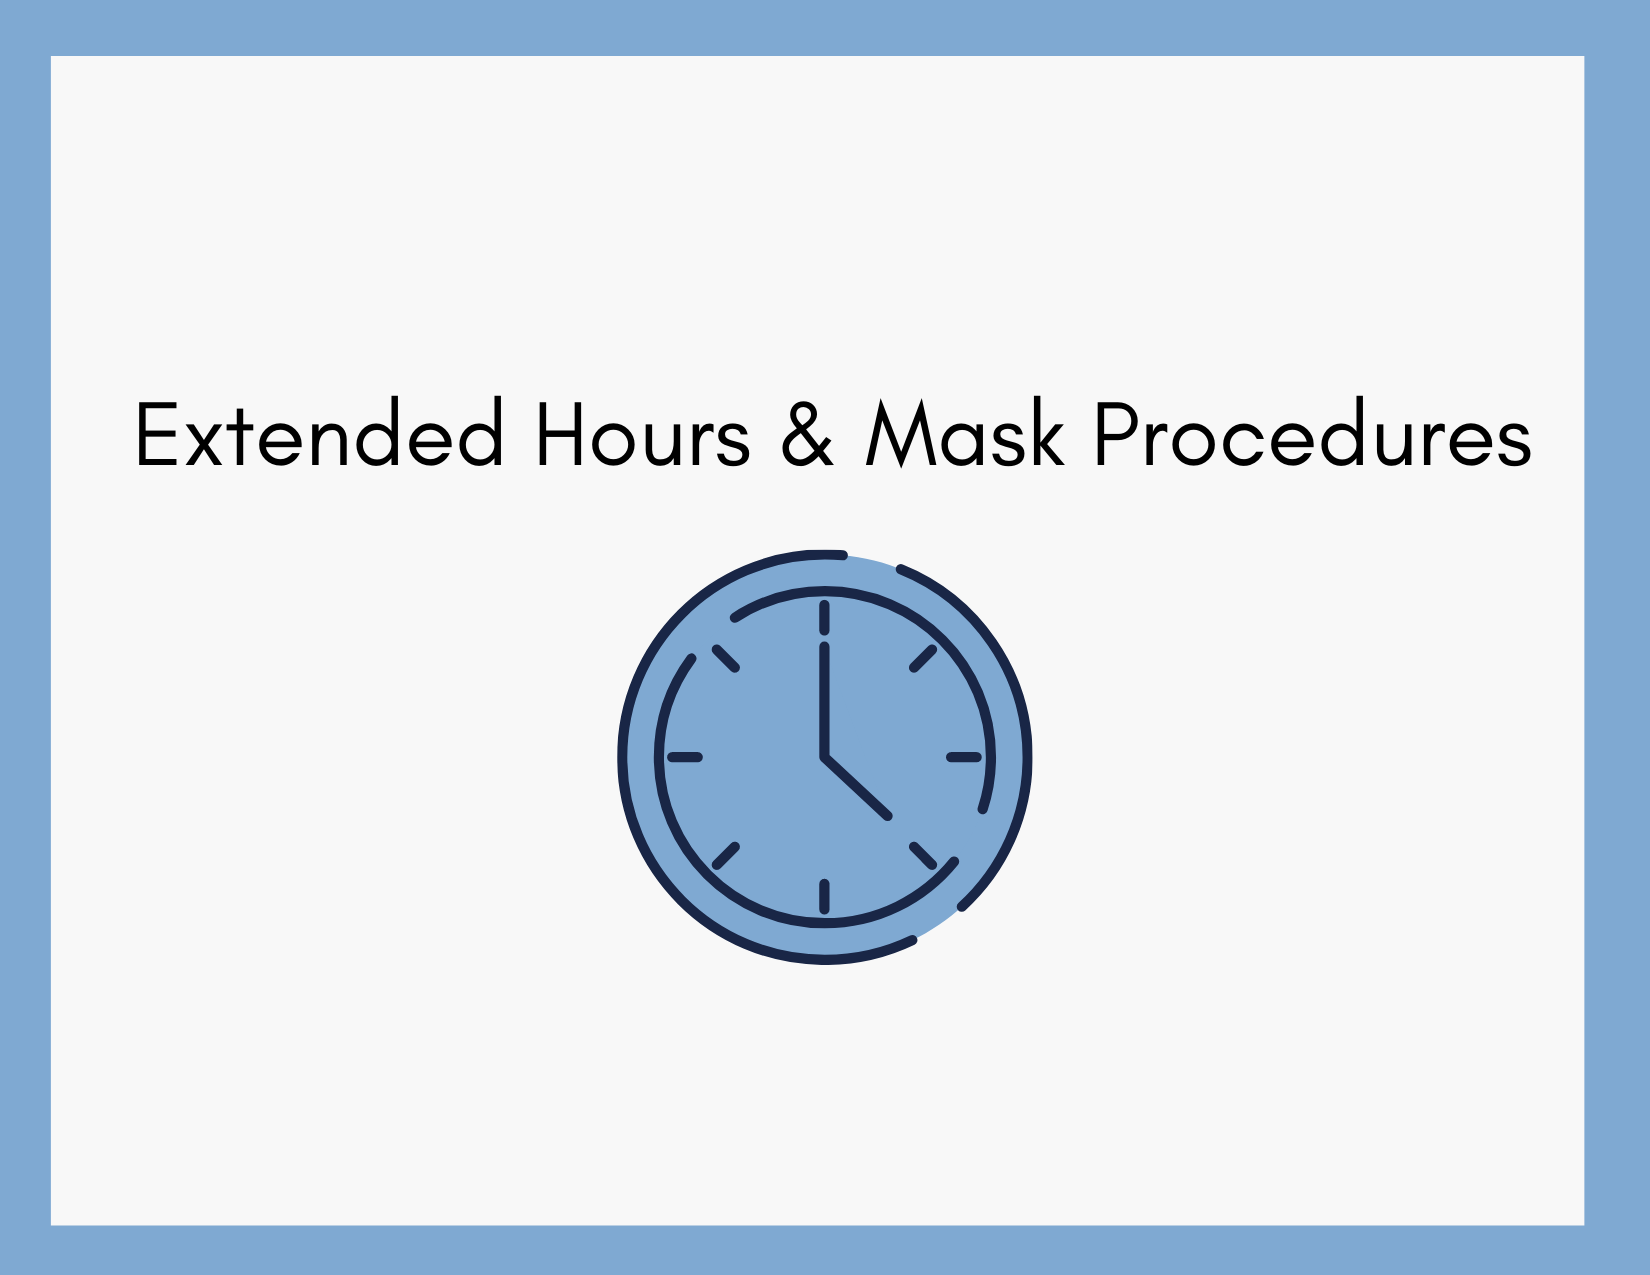 Extended Hours and Mask Procedures